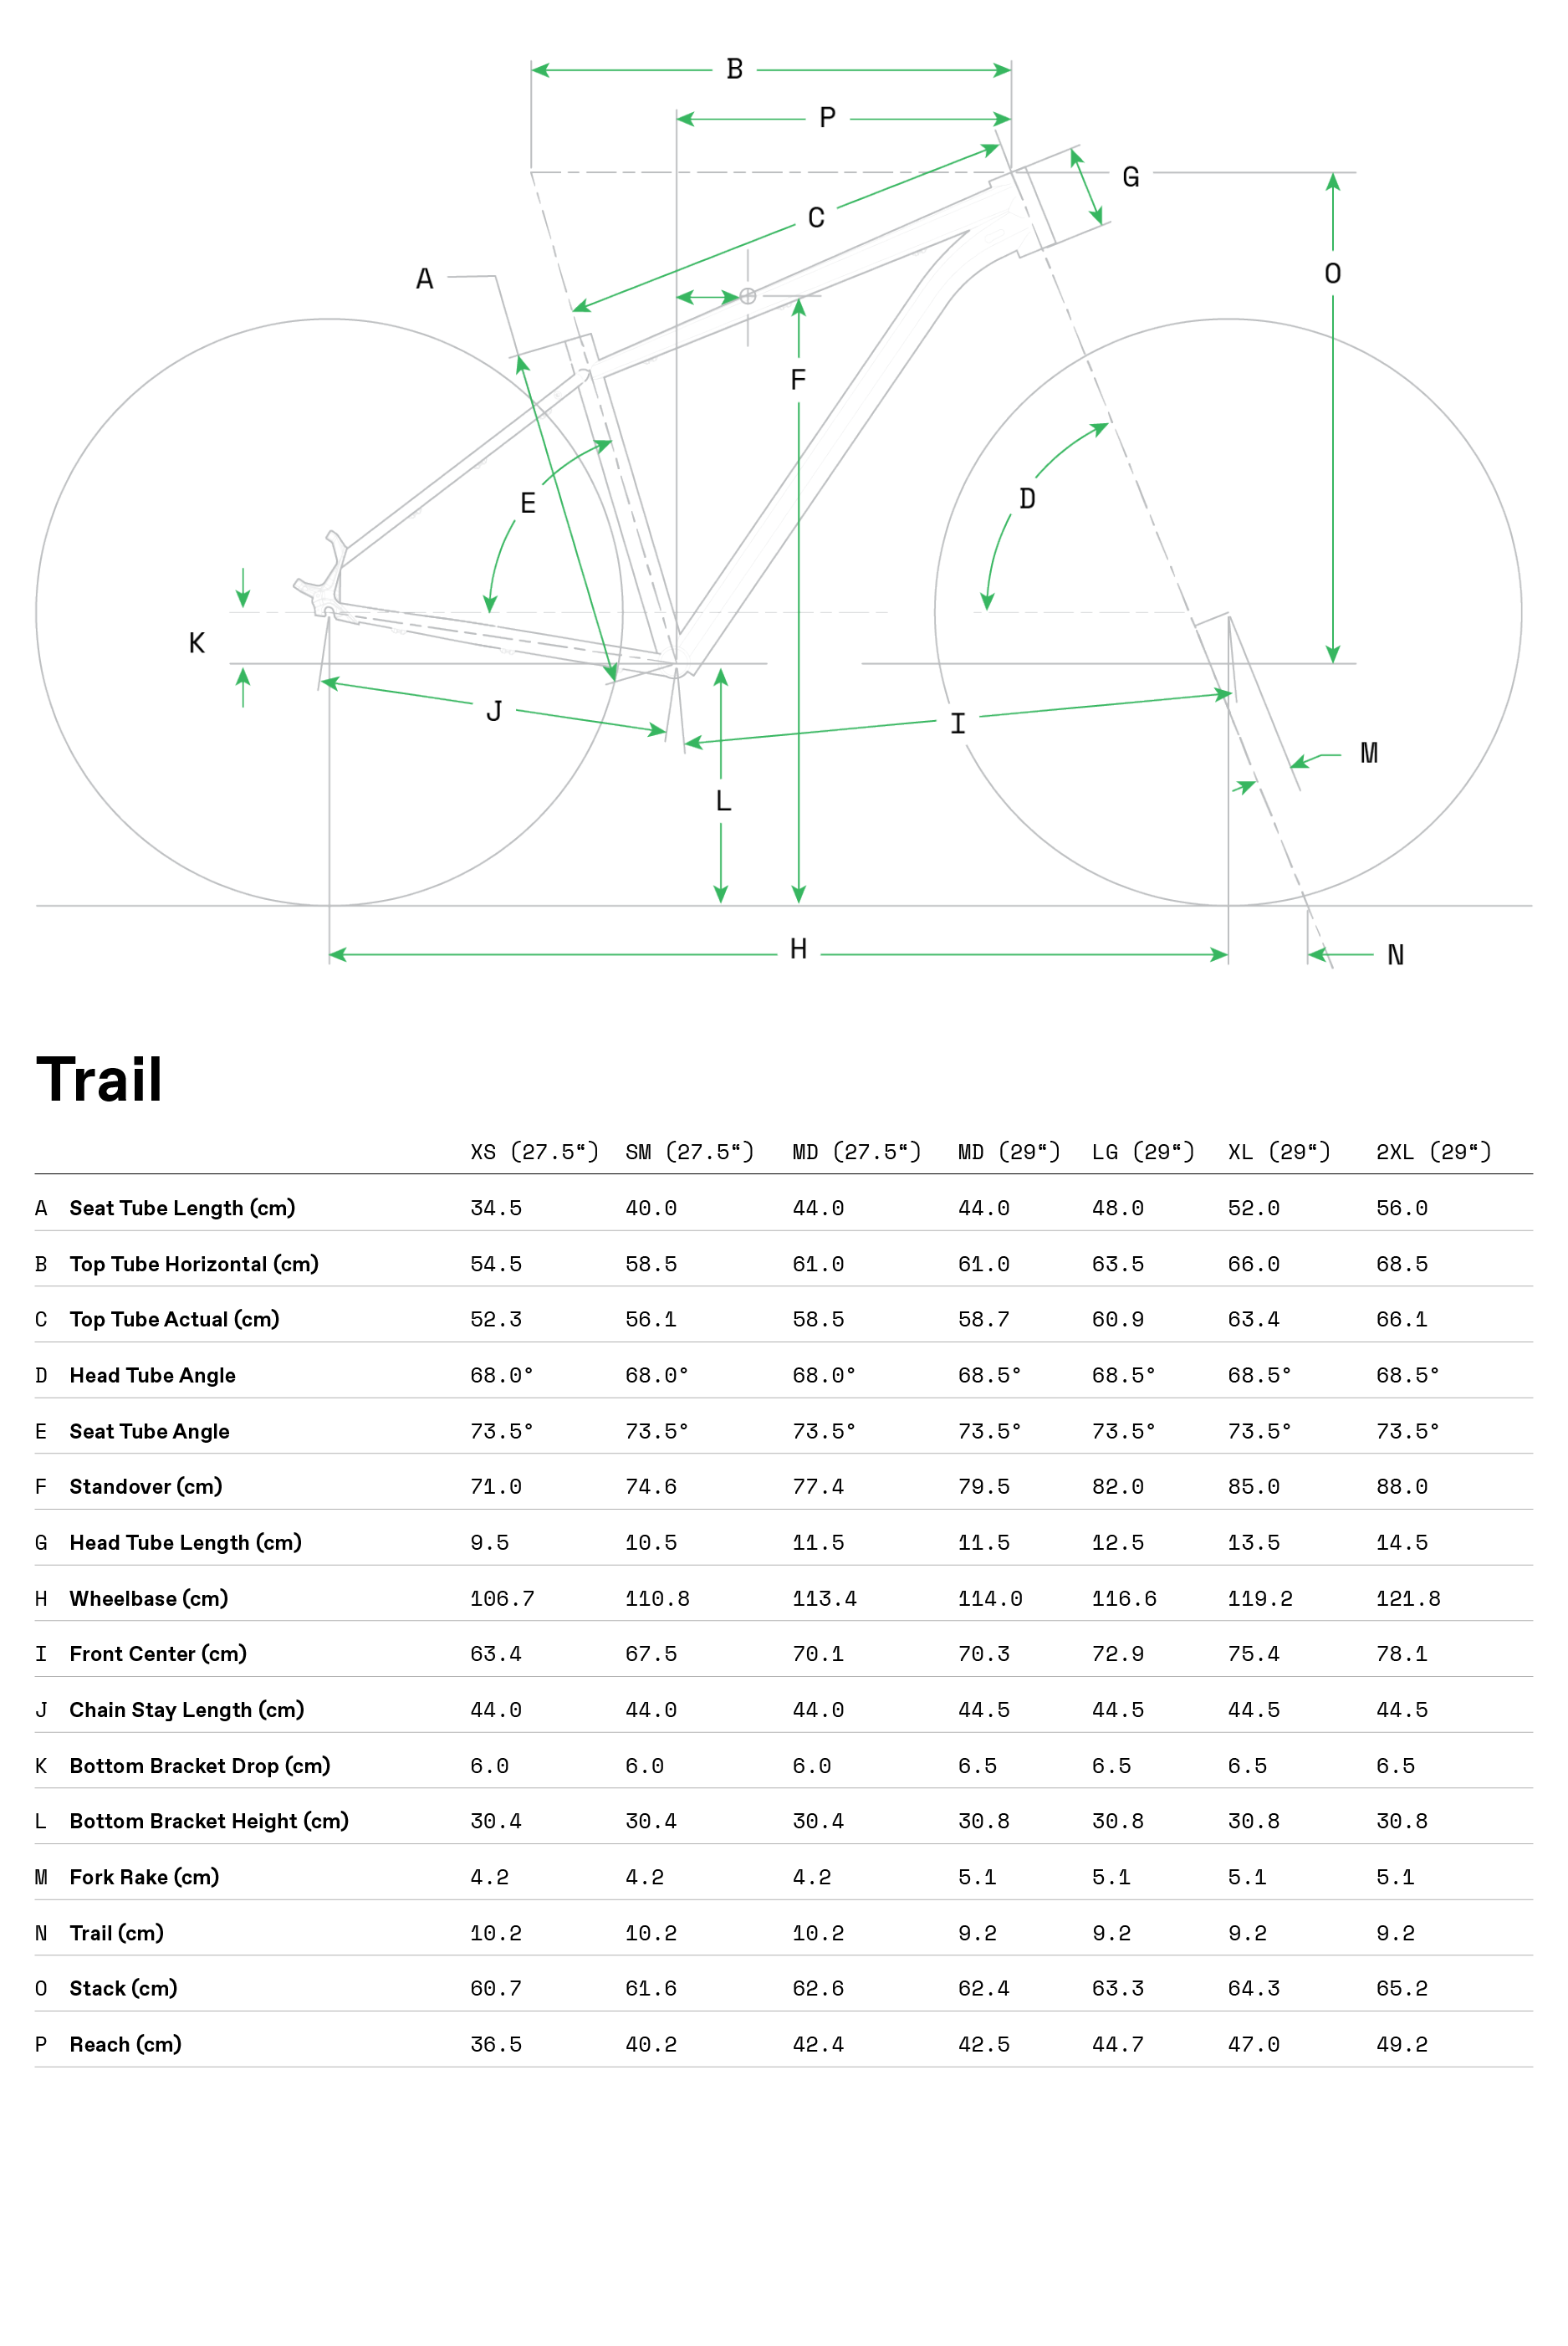 trail_geo_table.png?h=2805&la=es-ES&w=18